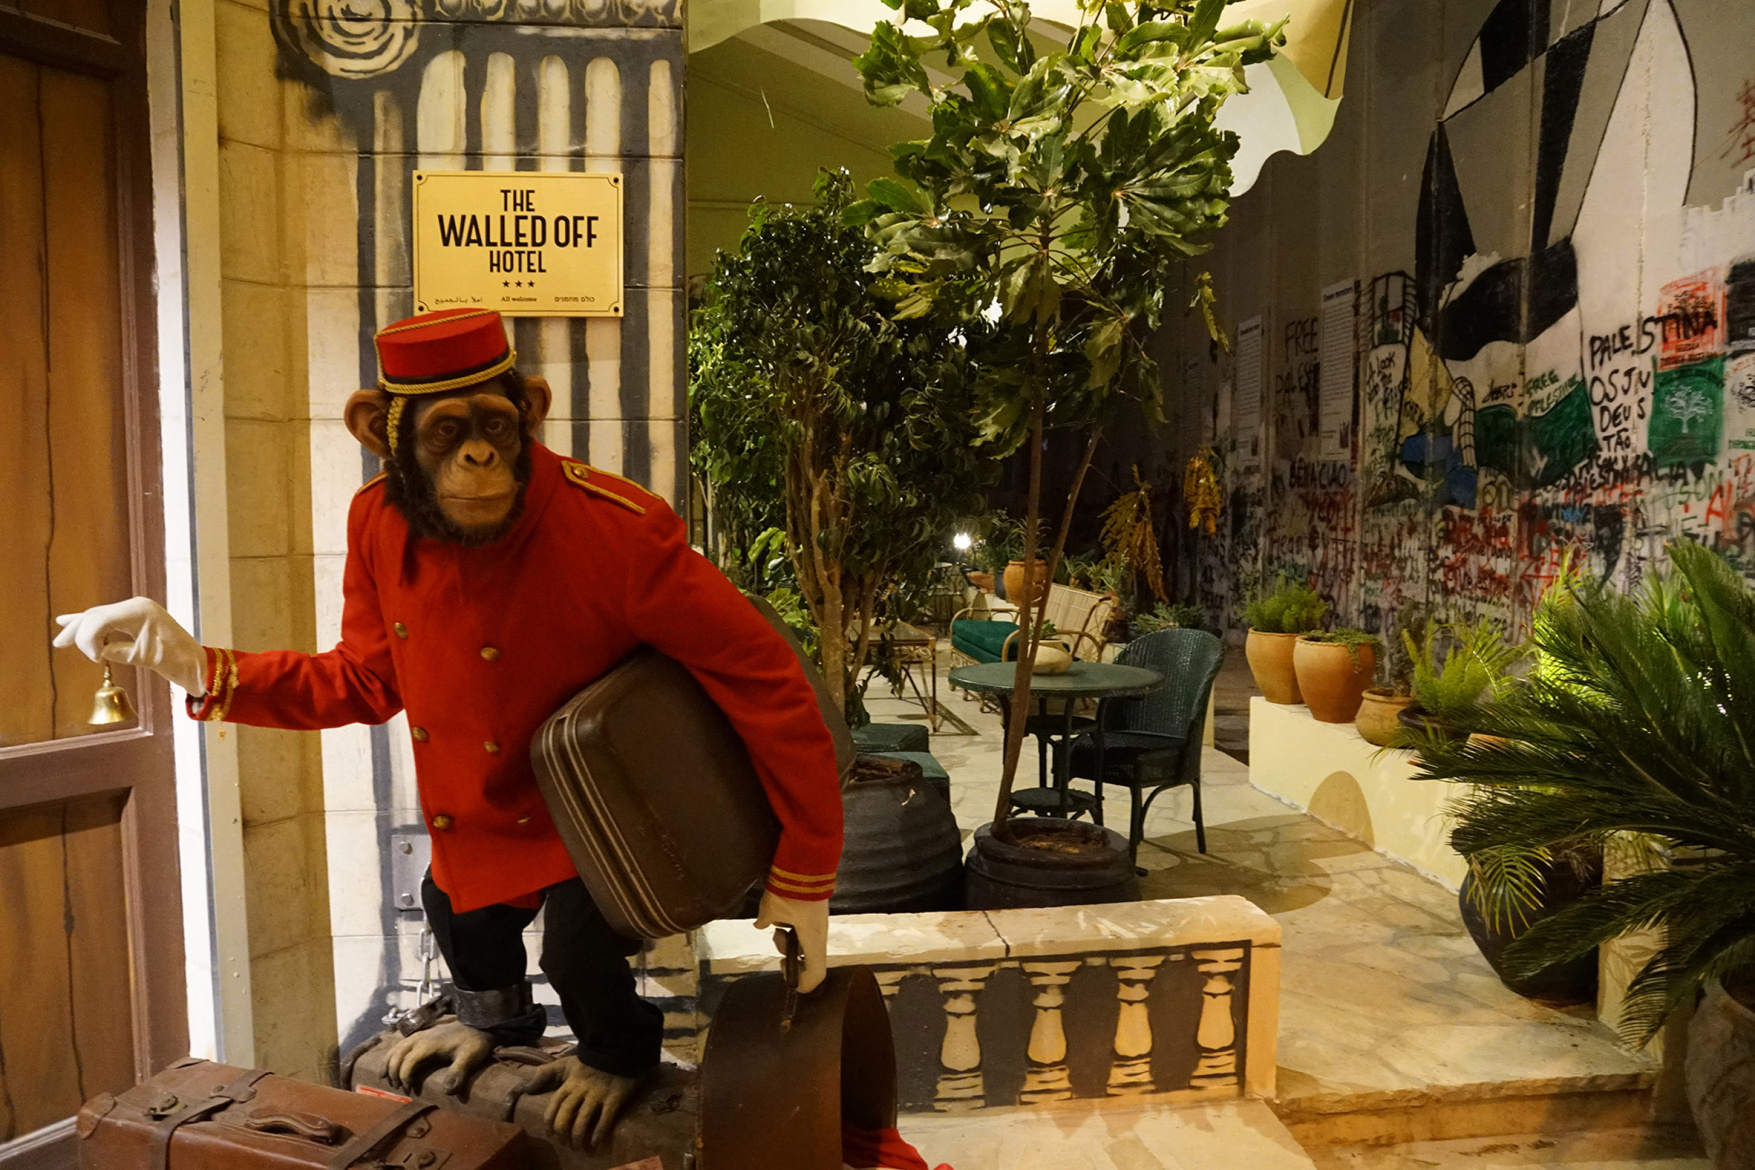 PHOTOS From the Banksy Hotel in Bethlehem image